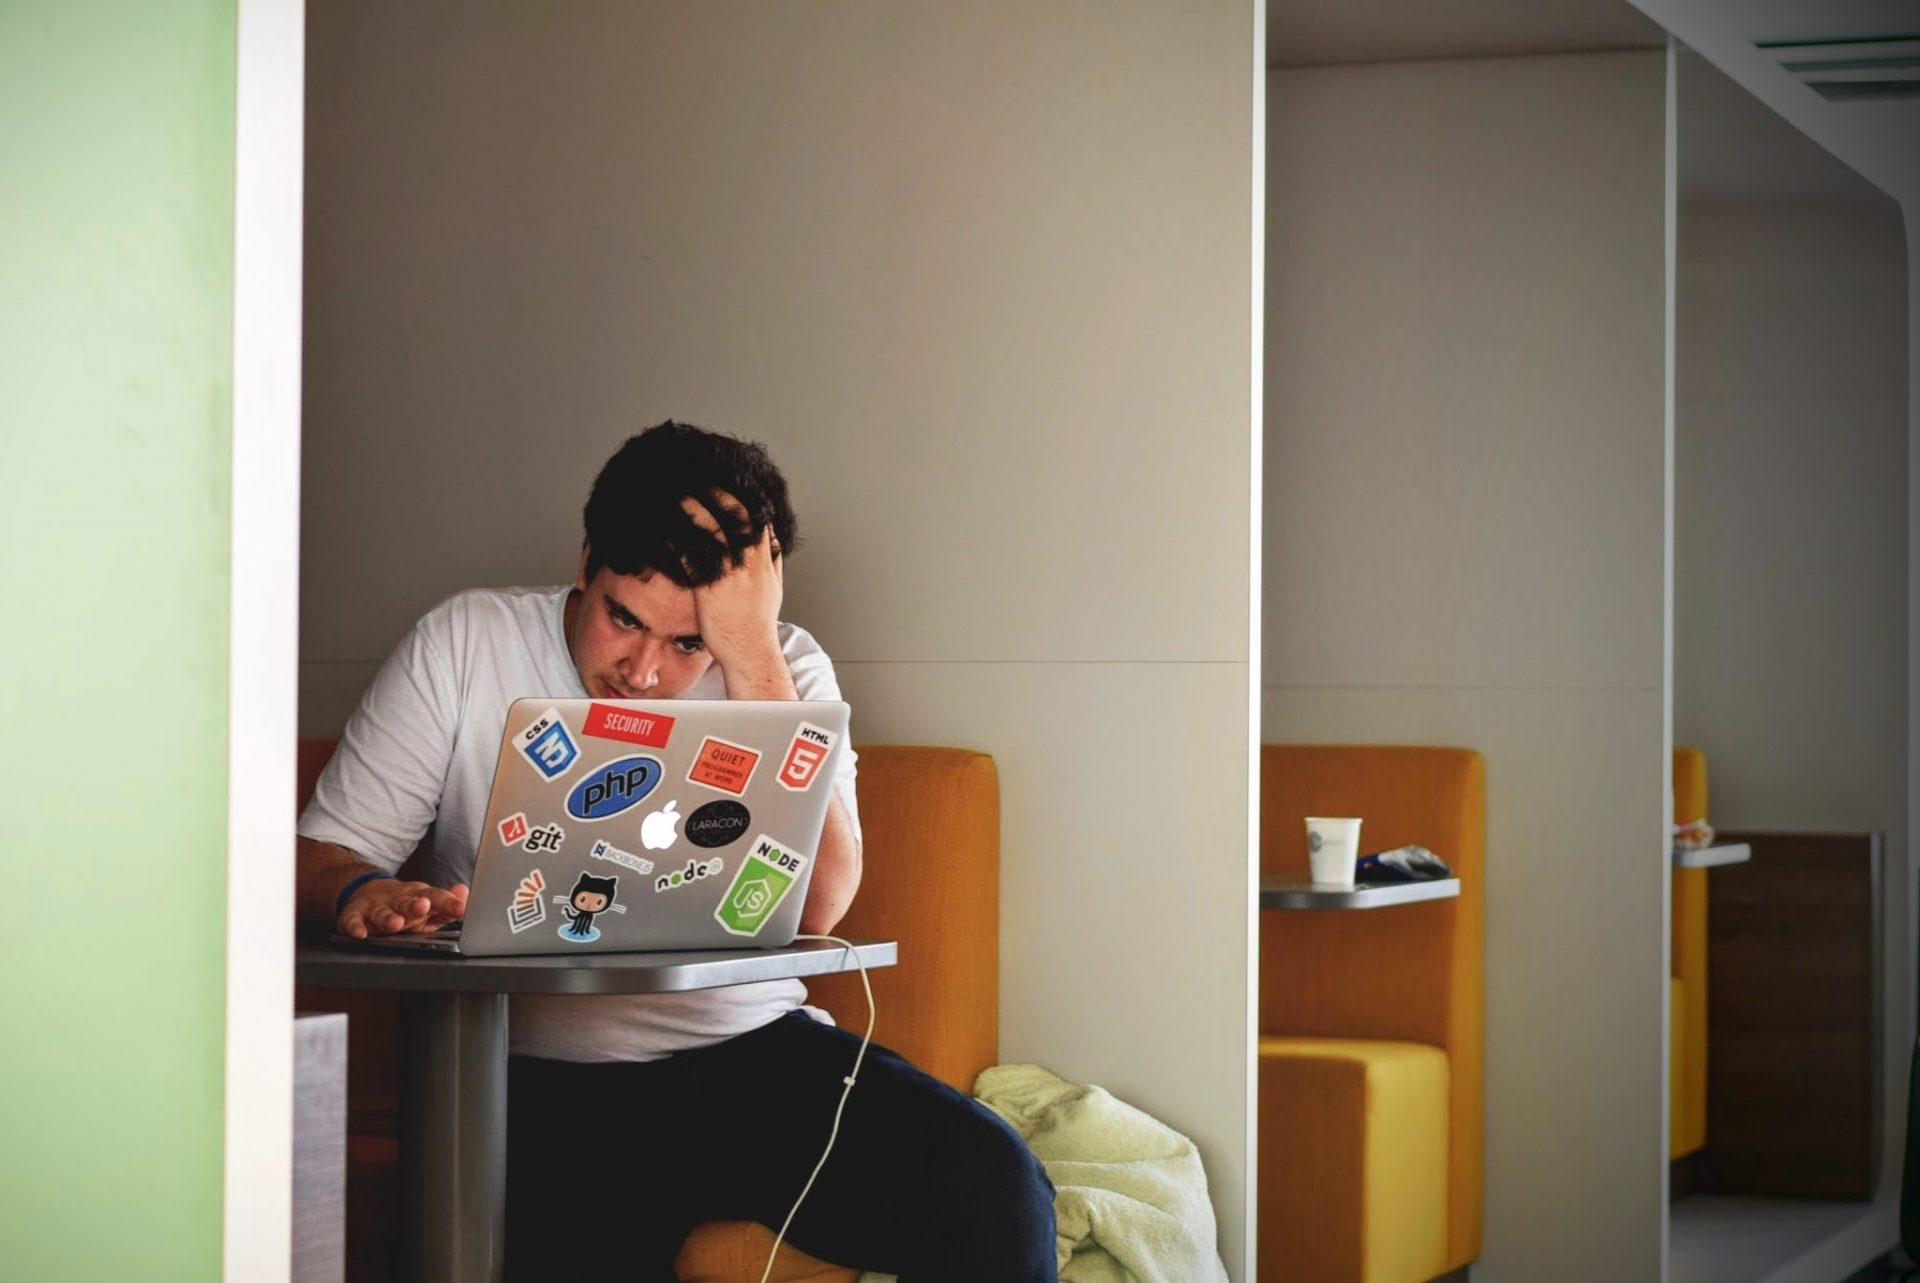 How to Avoid Student Burnout or Academic Fatigue